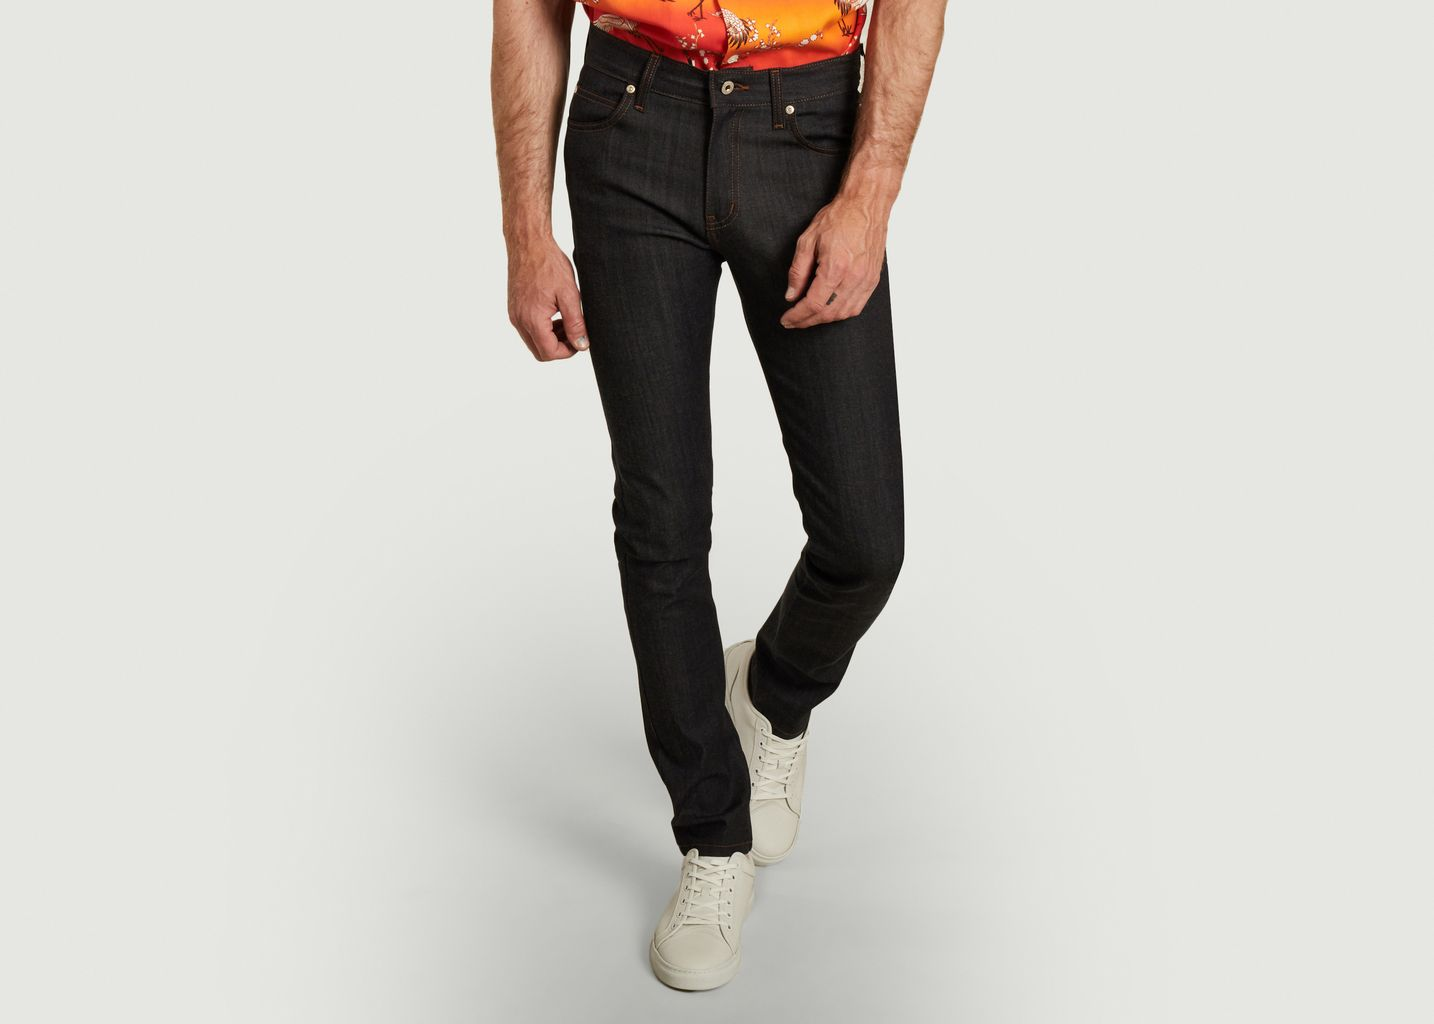 Jean Super Guy Whisper Stretch Denim - Naked and Famous